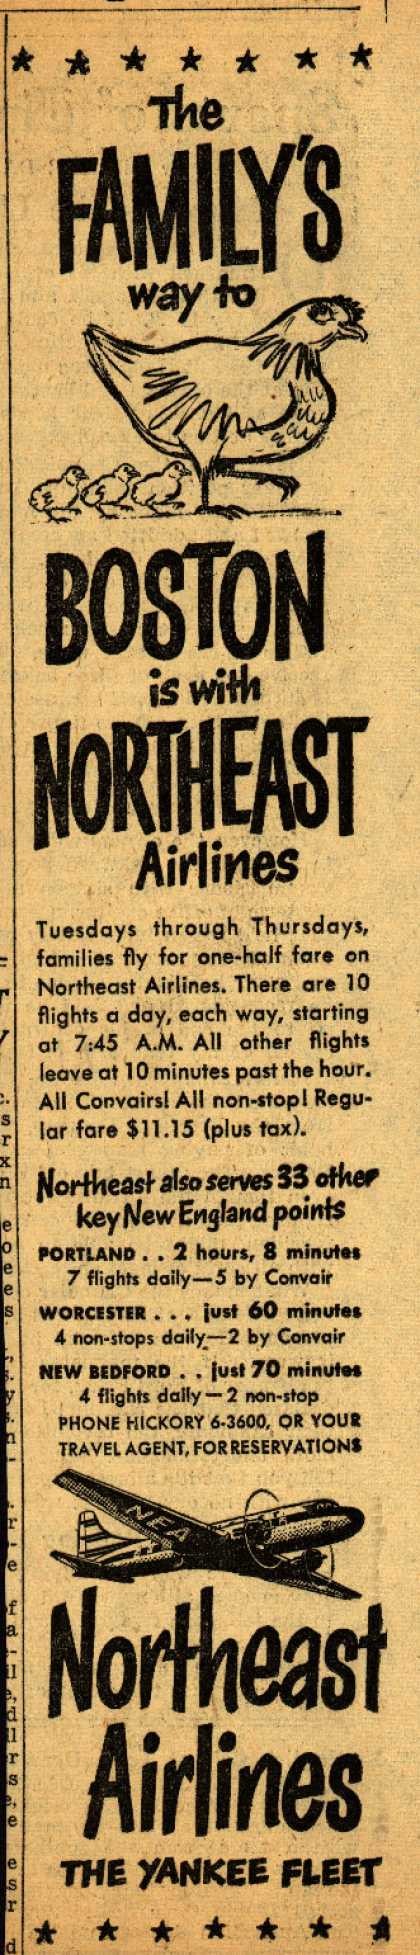 """Northeast Airline's Boston – The FAMILY""""S way to BOSTON is with NORTHEAST Airlines (1950)"""